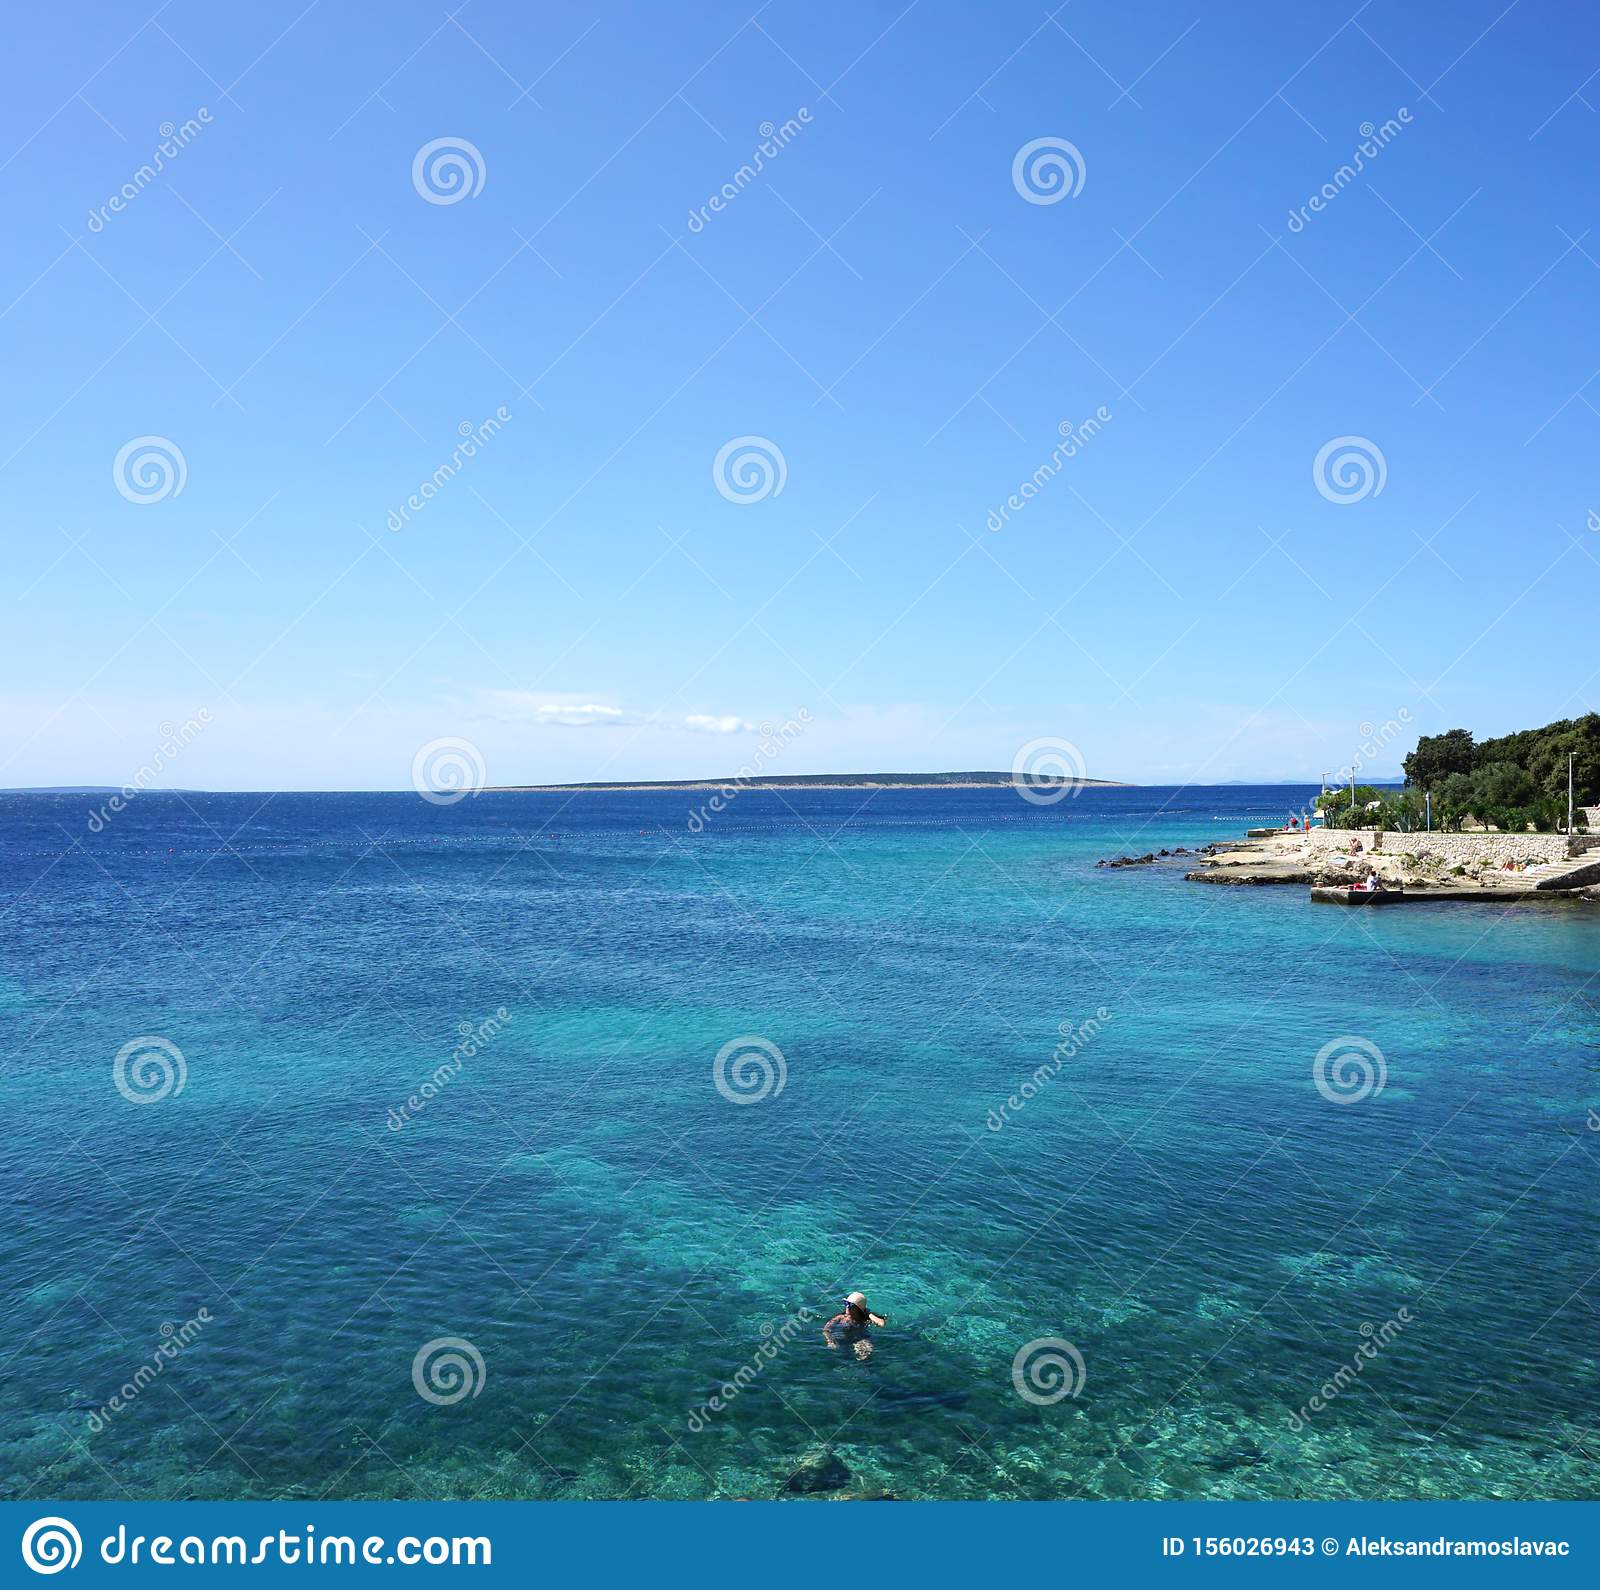 Background with beautiful seascape and horizon line on summertime